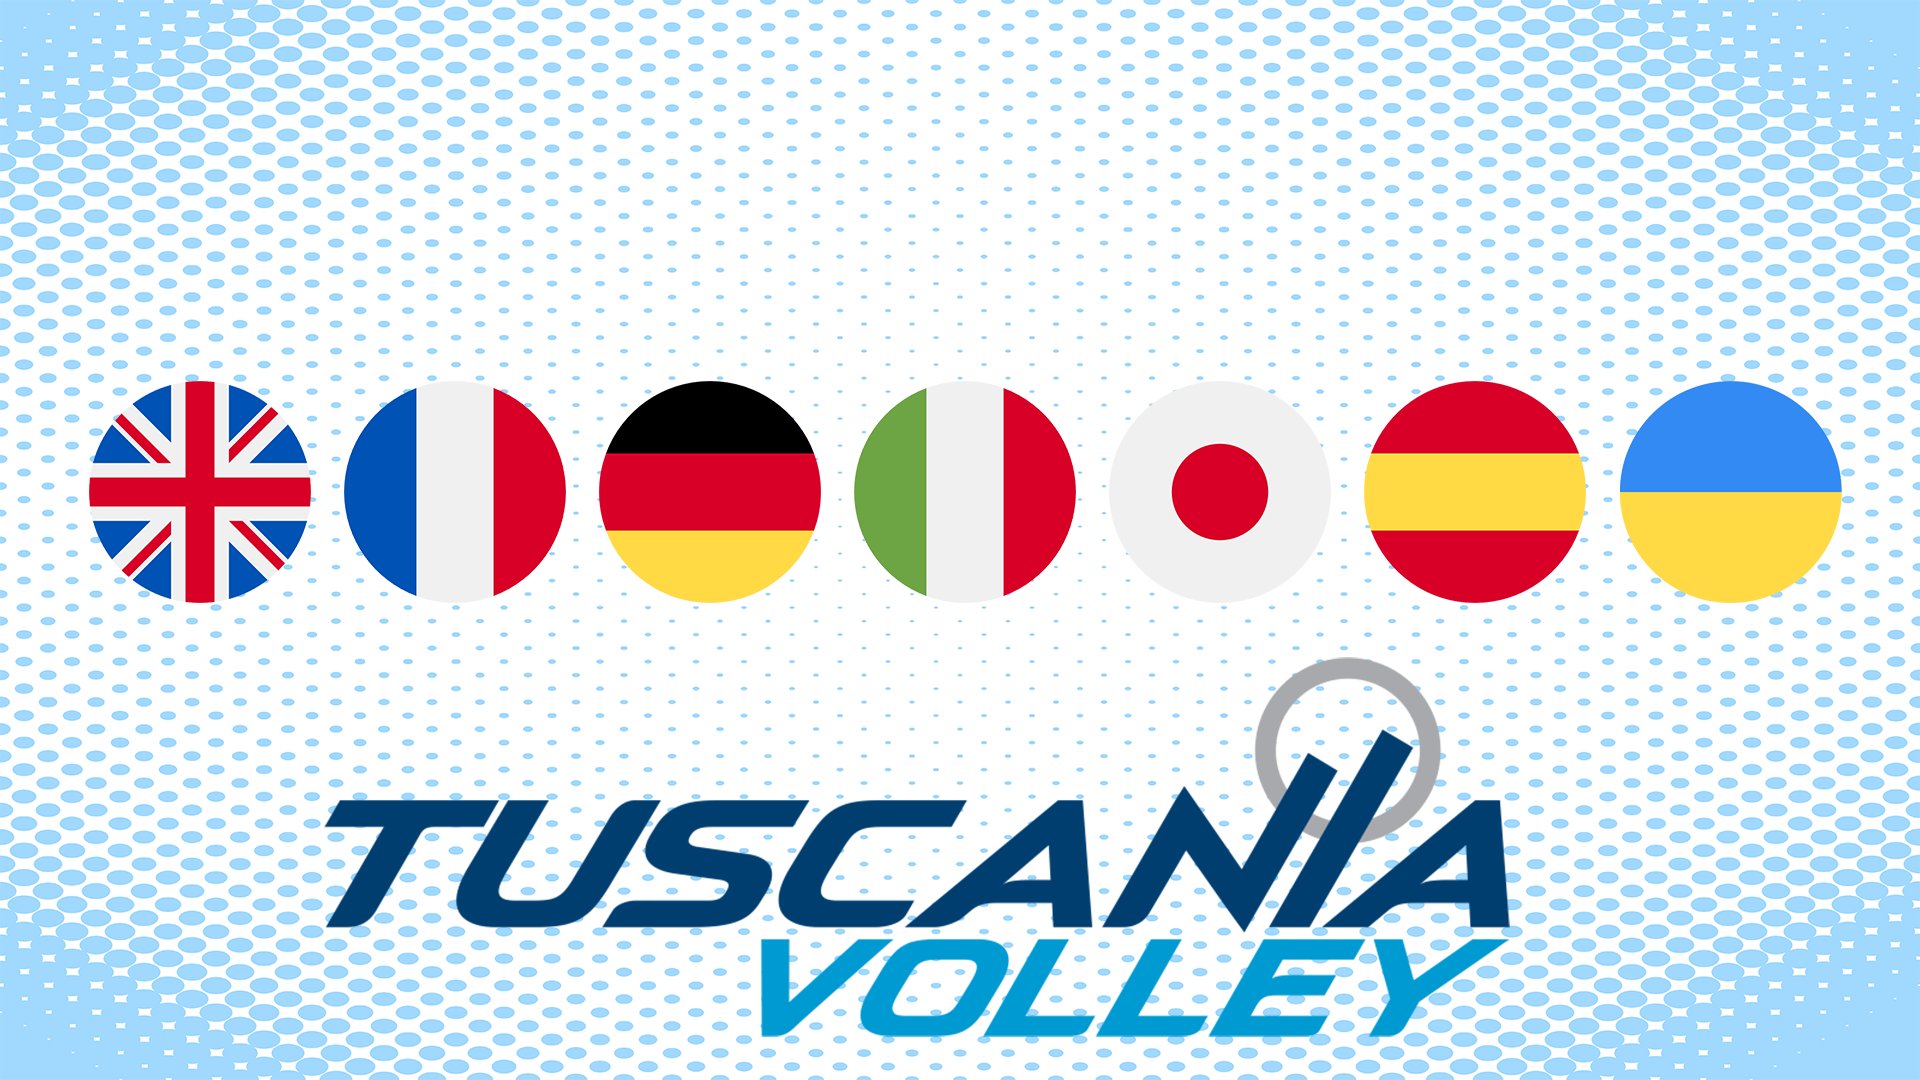 Tuscania Volley Internazionale